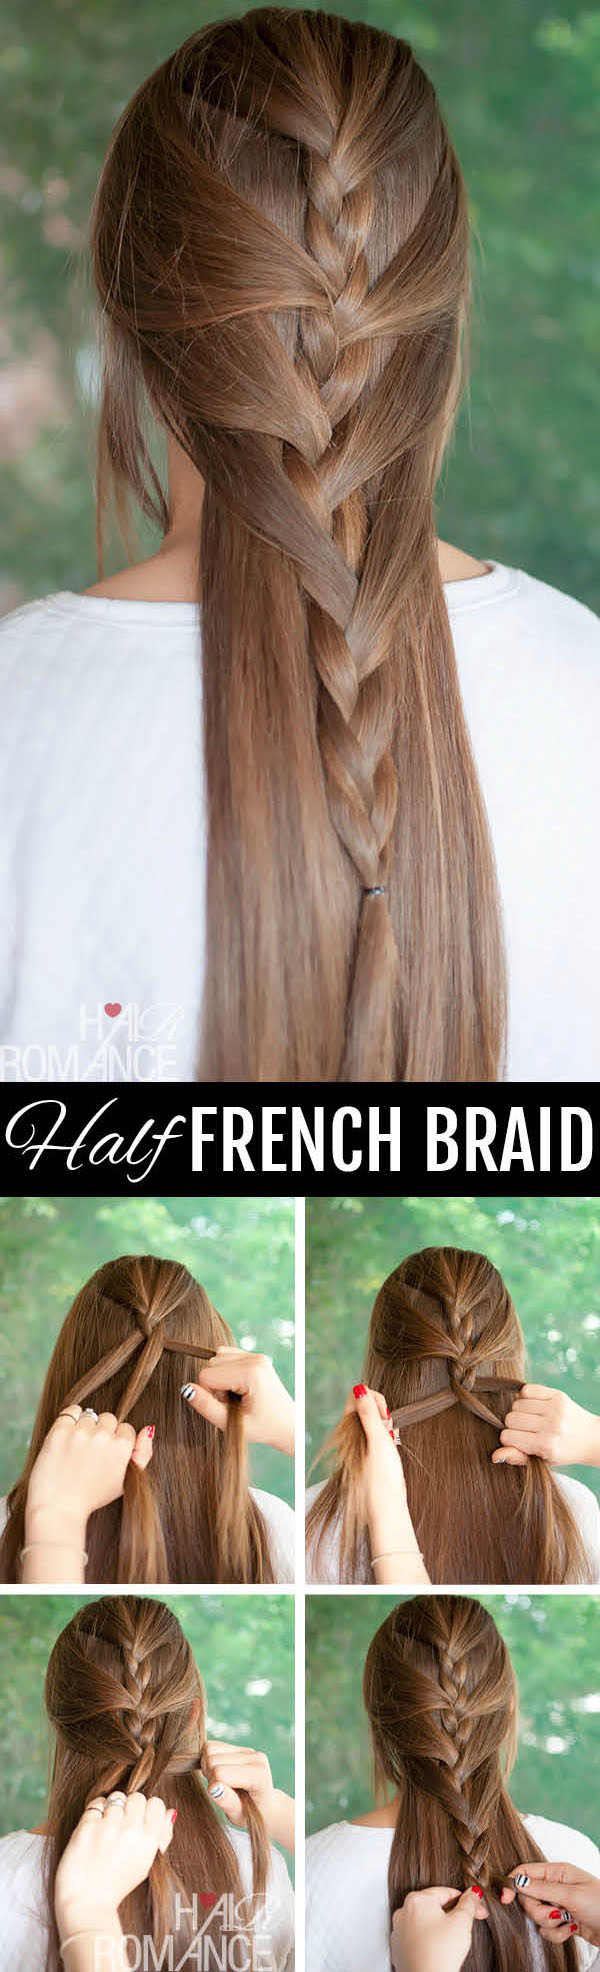 Swept away - try this sweeping half French braid tutorial ...